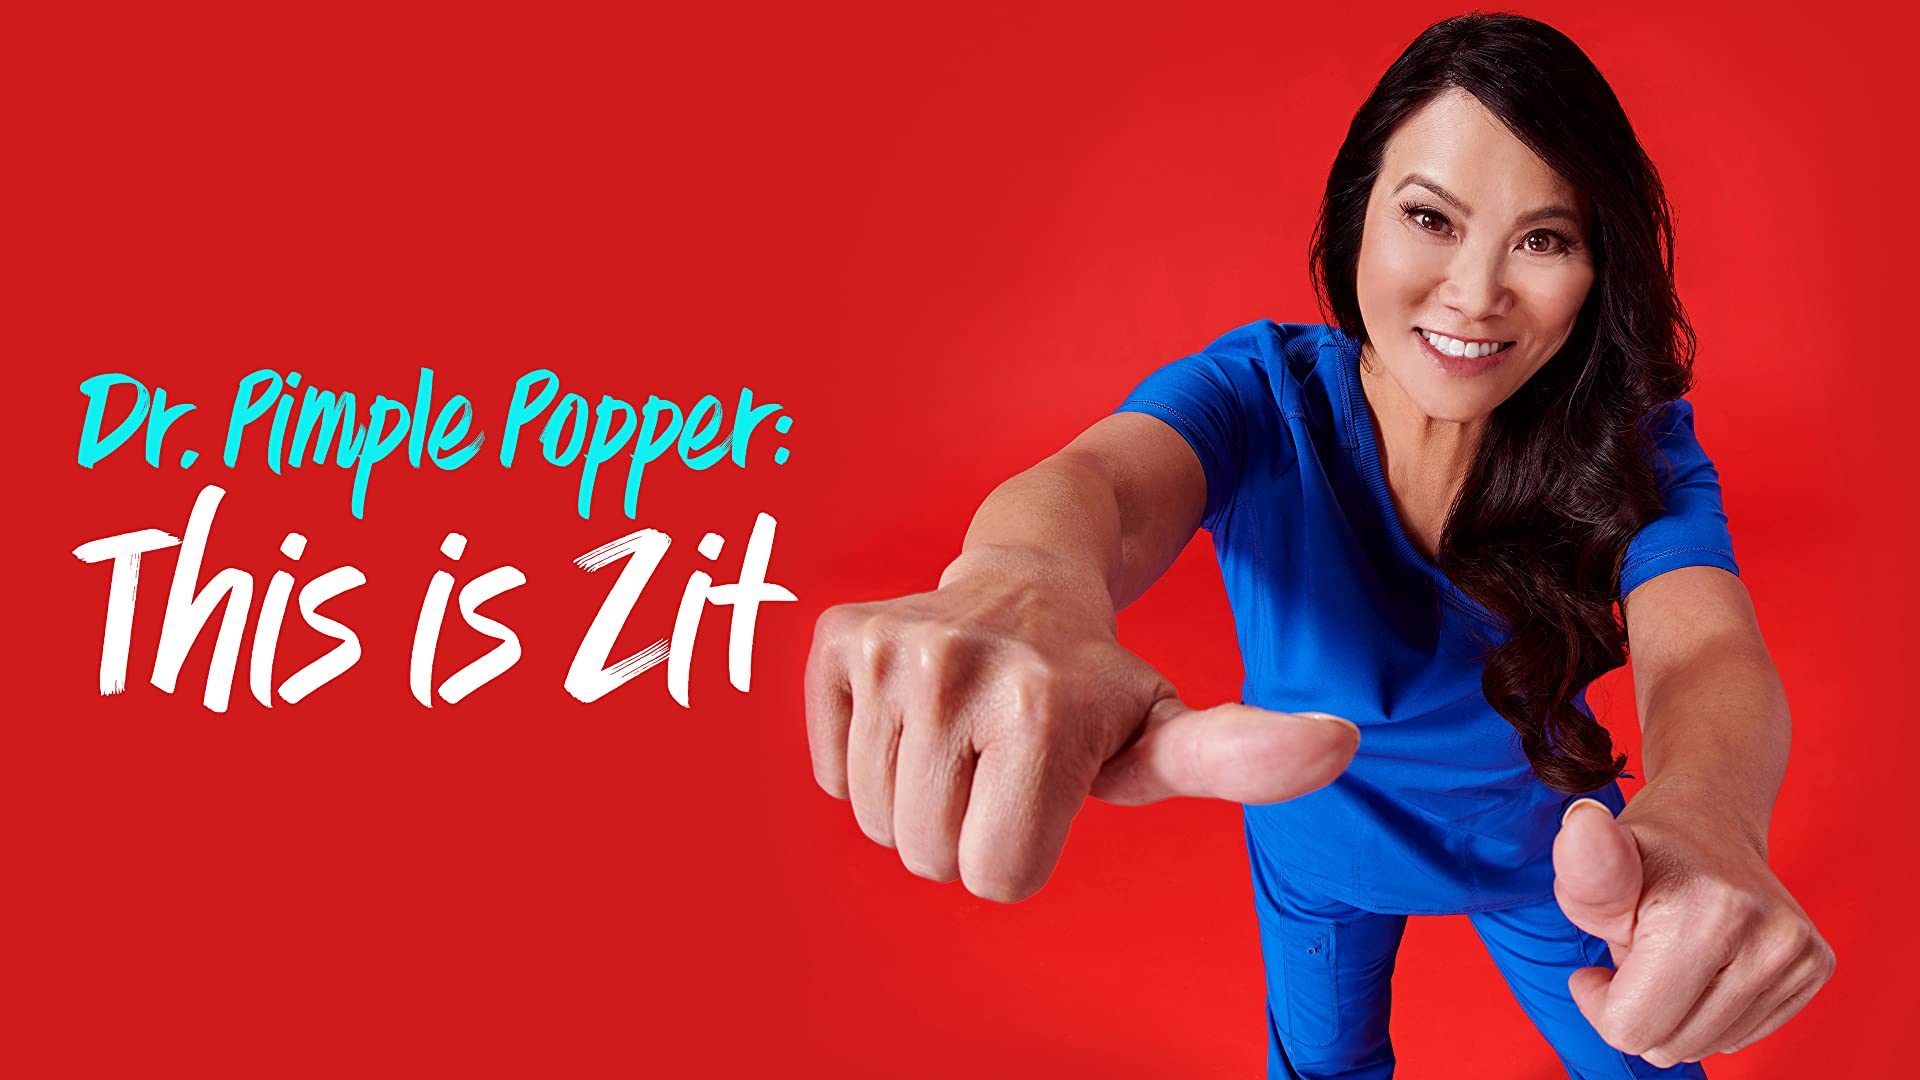 Dr. Pimple Popper: This is Zit - Season 1